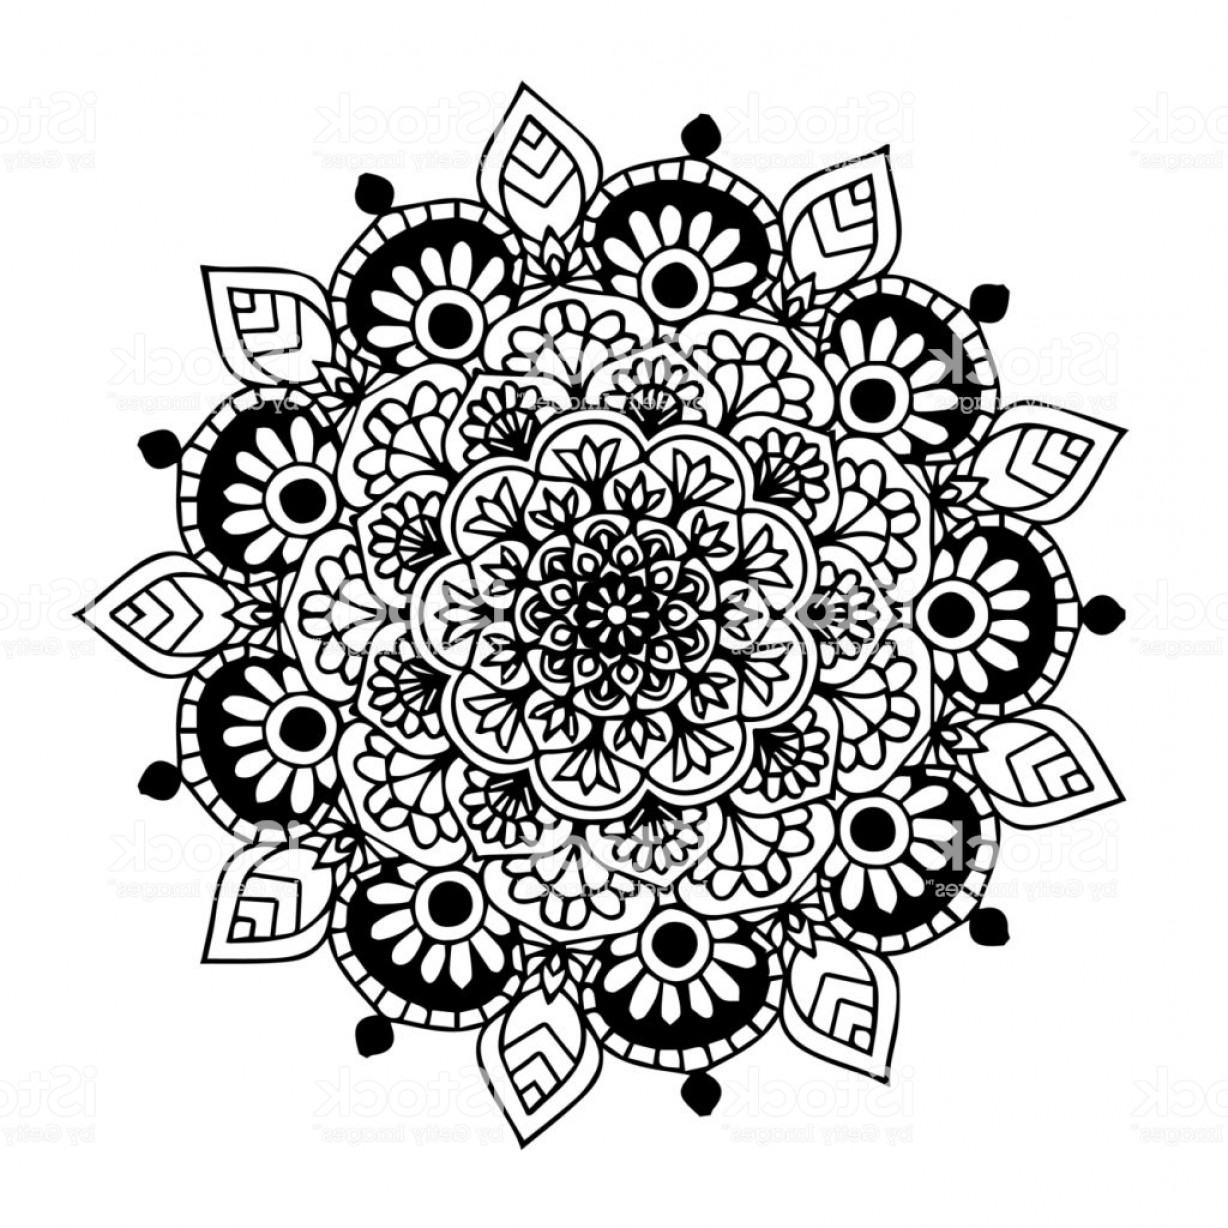 Razorback Vector Mandala: Mandalas For Coloring Book Decorative Round Ornaments Unusual Flower Shape Oriental Gm